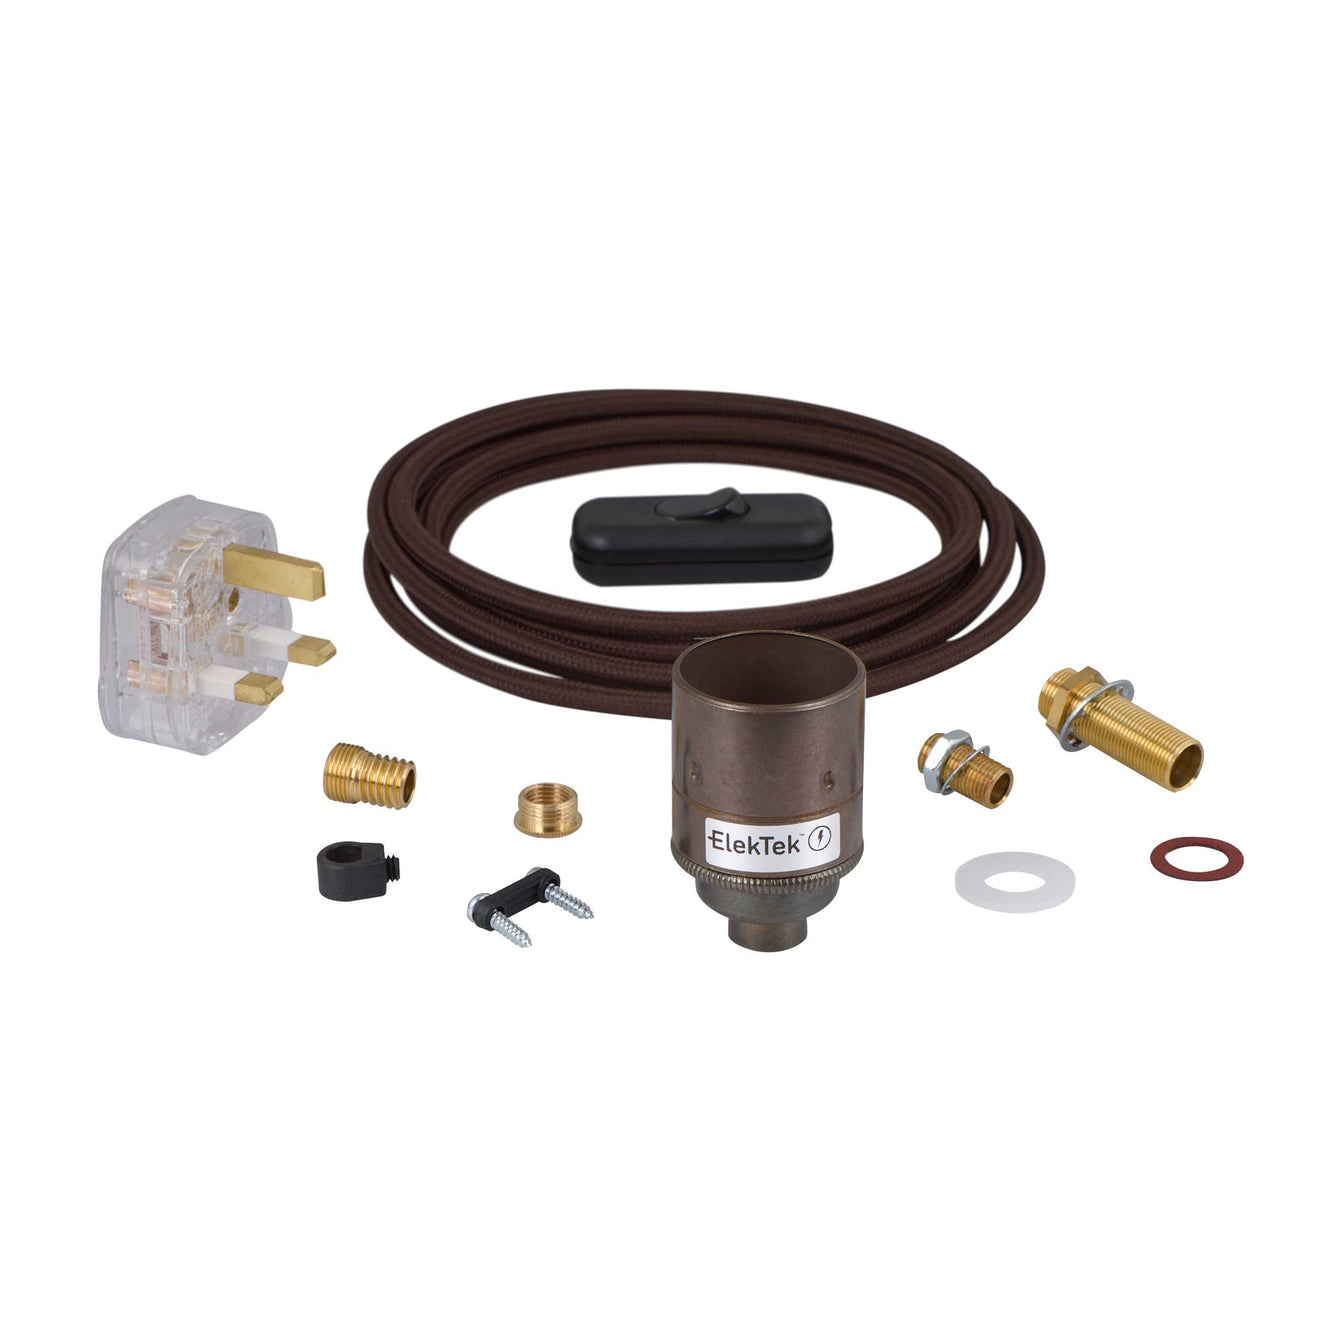 ElekTek Premium Lamp Kit Antique Brass Plain E27 Lamp Holder with Flex, In Line Switch and 3A UK Plug Round